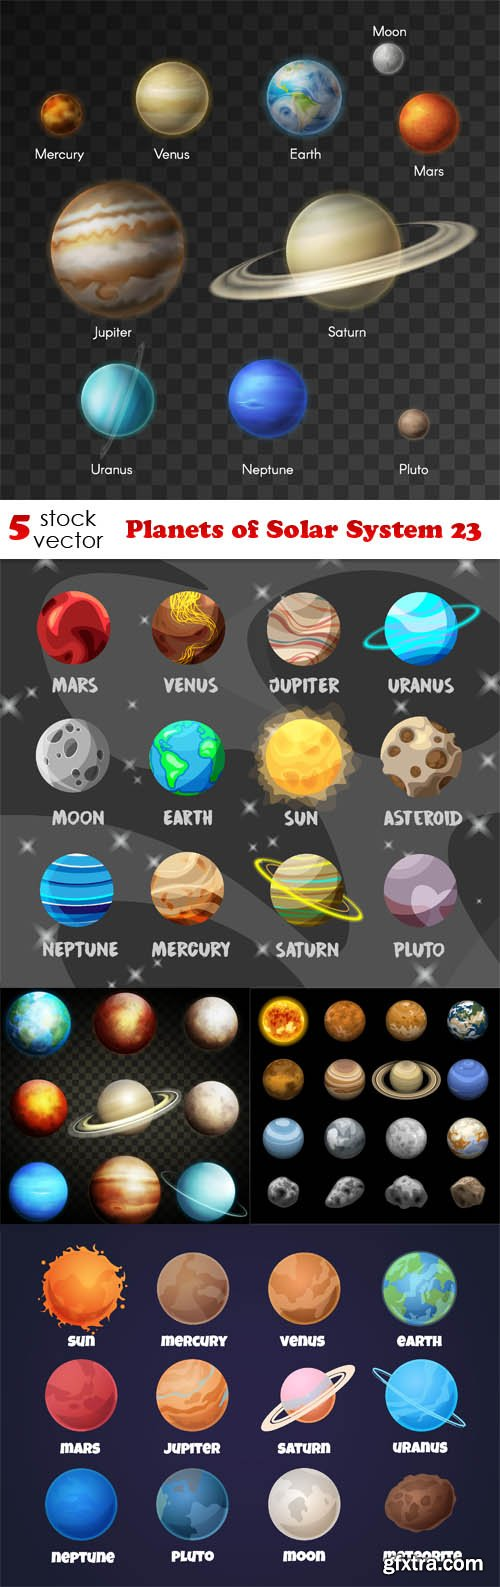 Vectors - Planets of Solar System 23